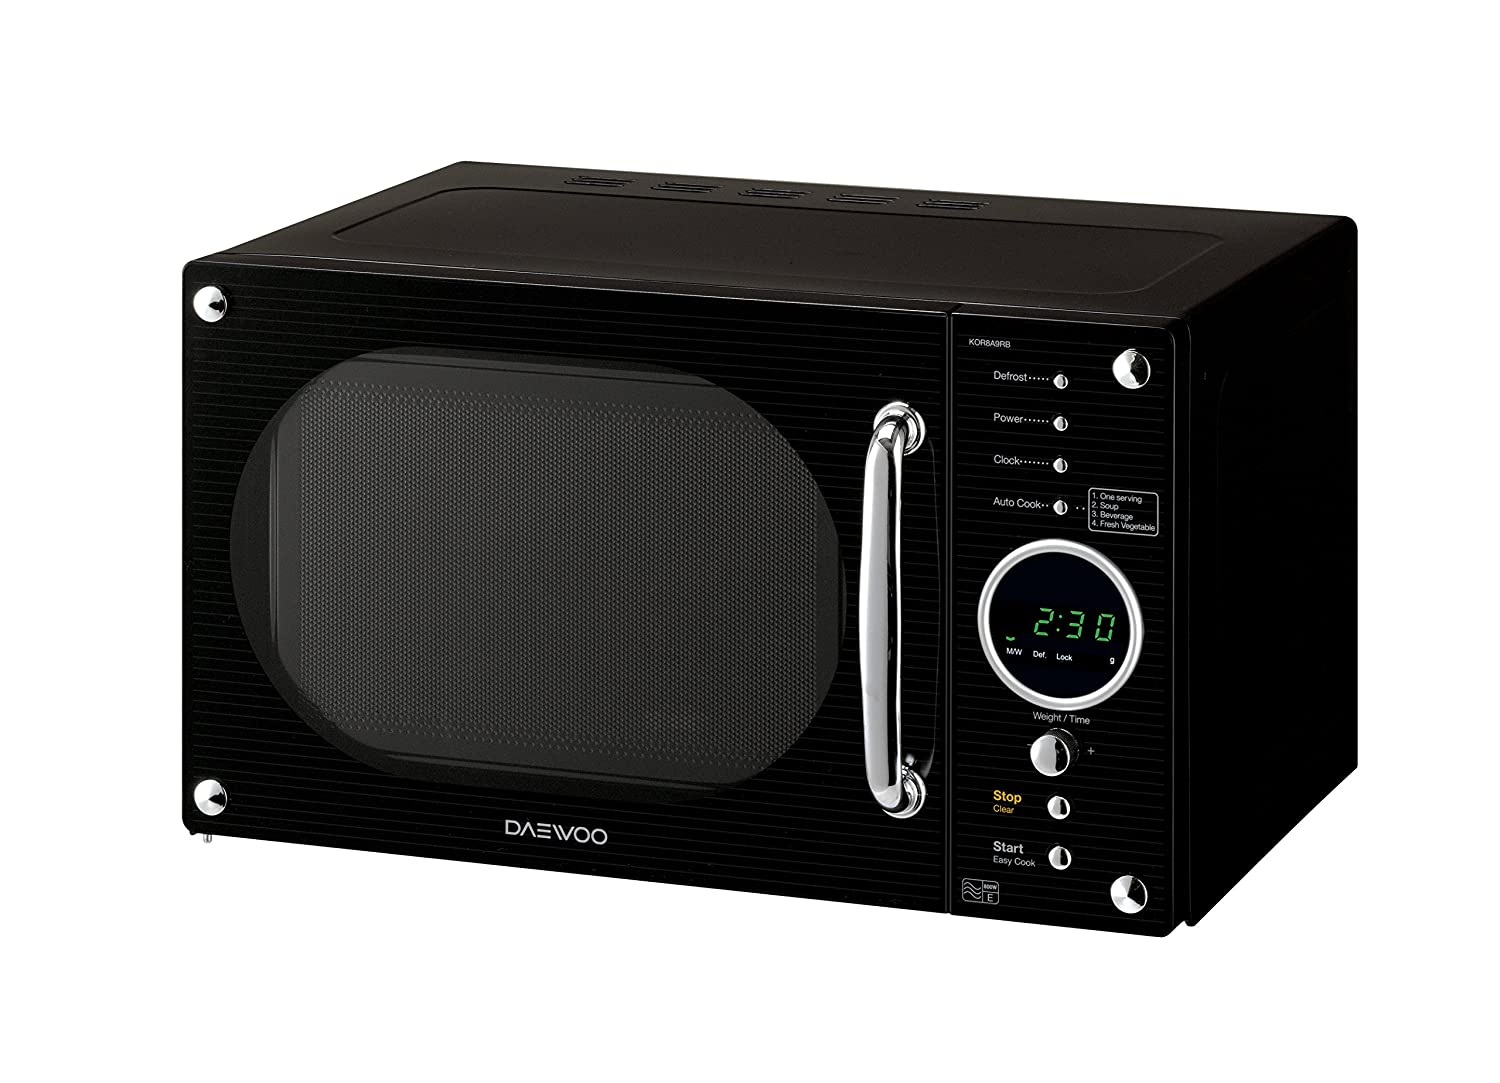 Daewoo 23l Freestanding 800w Retro Style Touch Control